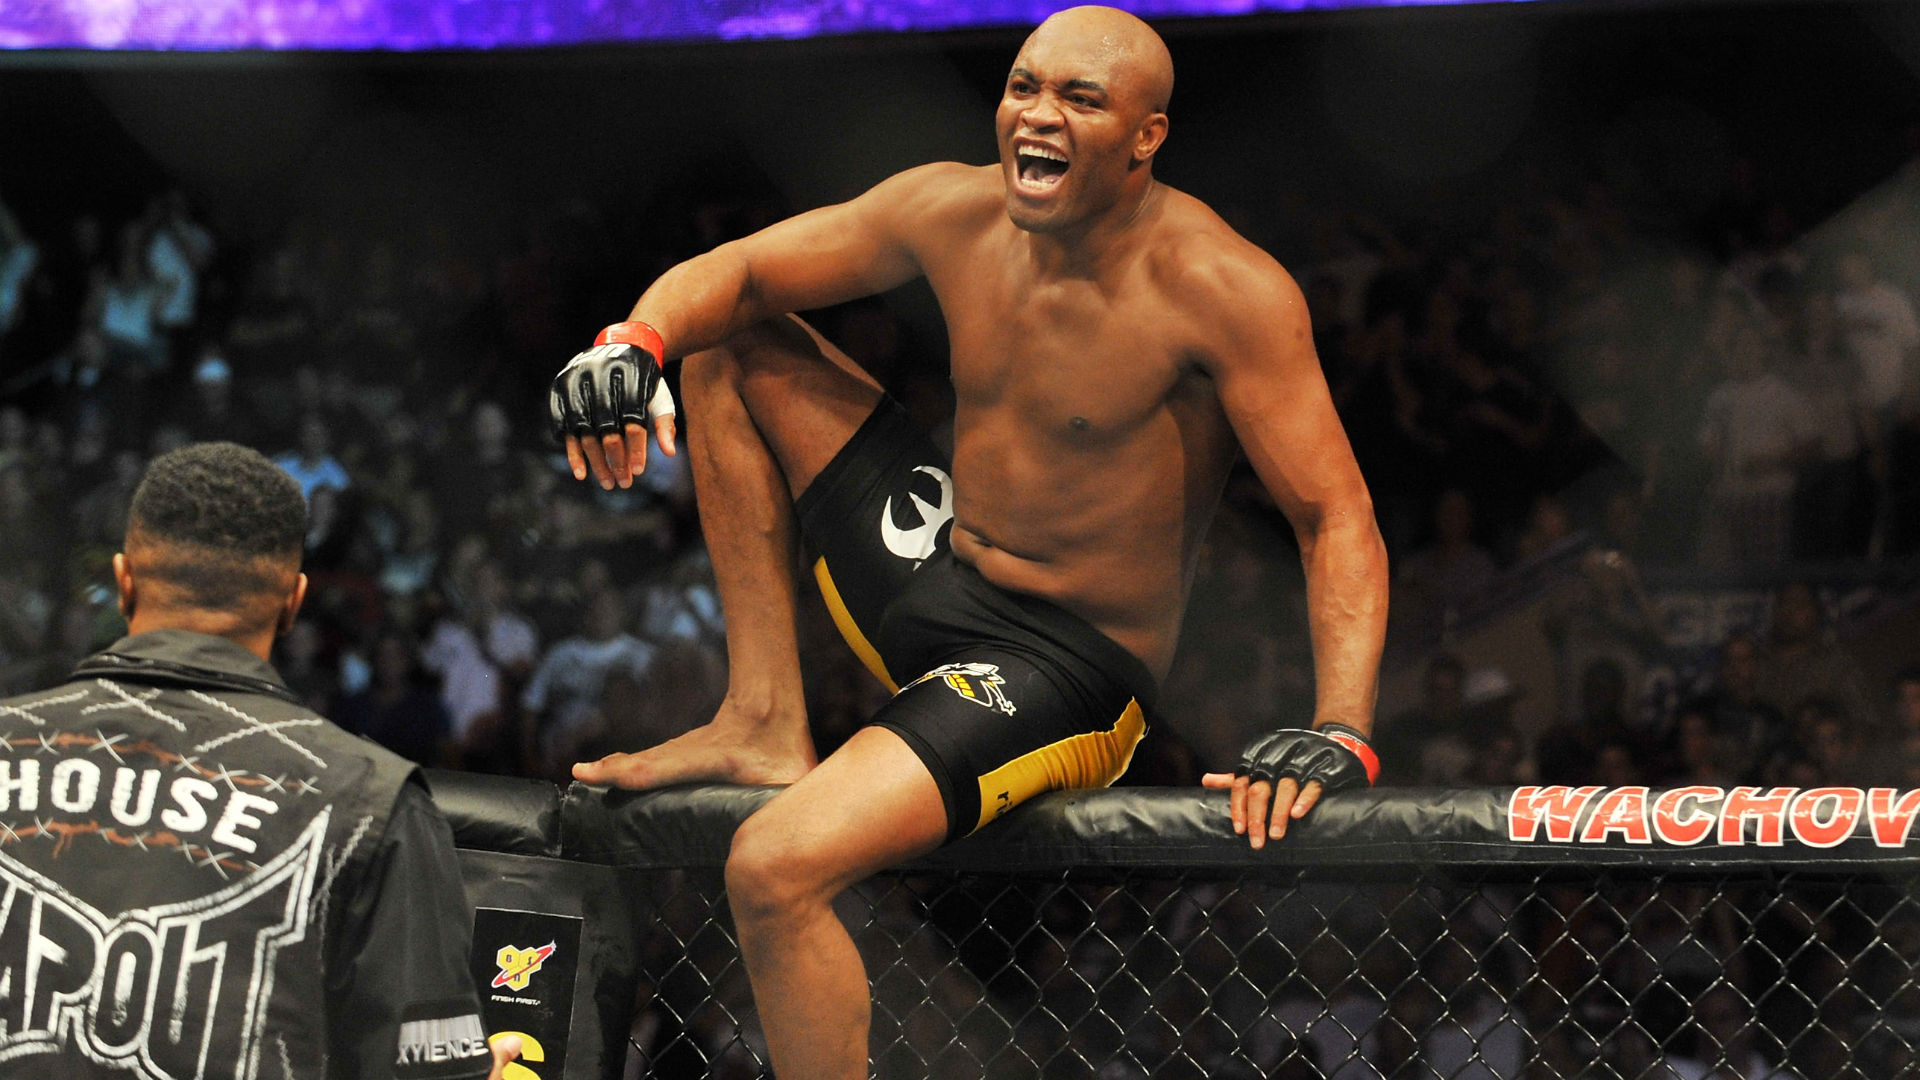 UFC 183 odds and picks – Silva, Diaz square off in Vegas